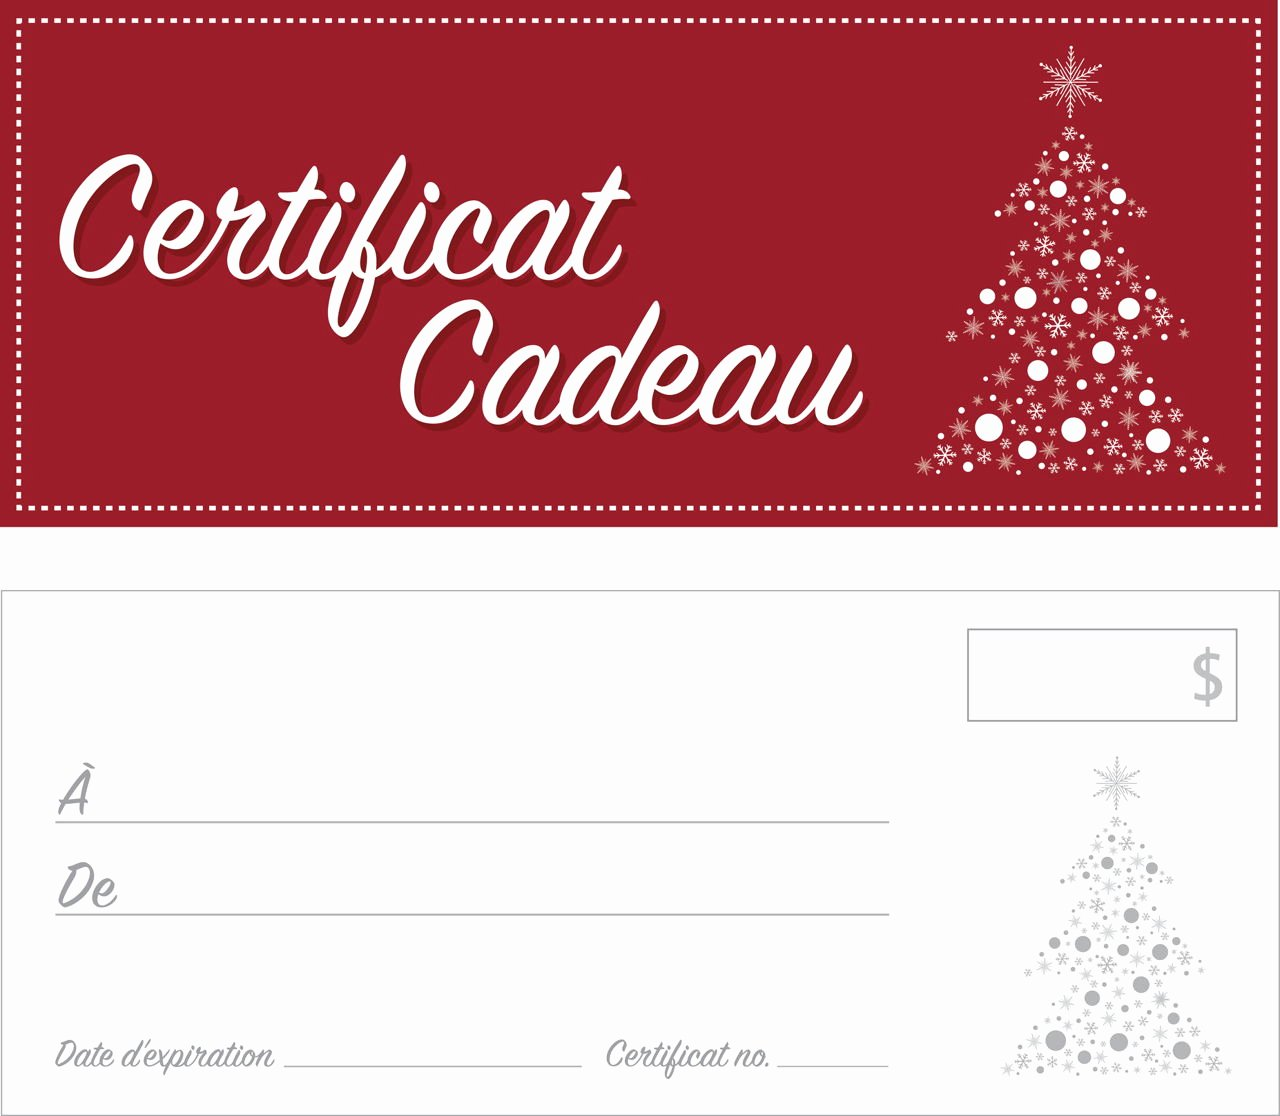 Gift Certificate Wording Best Of Sample Wordings for Gift Certificates You Ll Want to Copy now